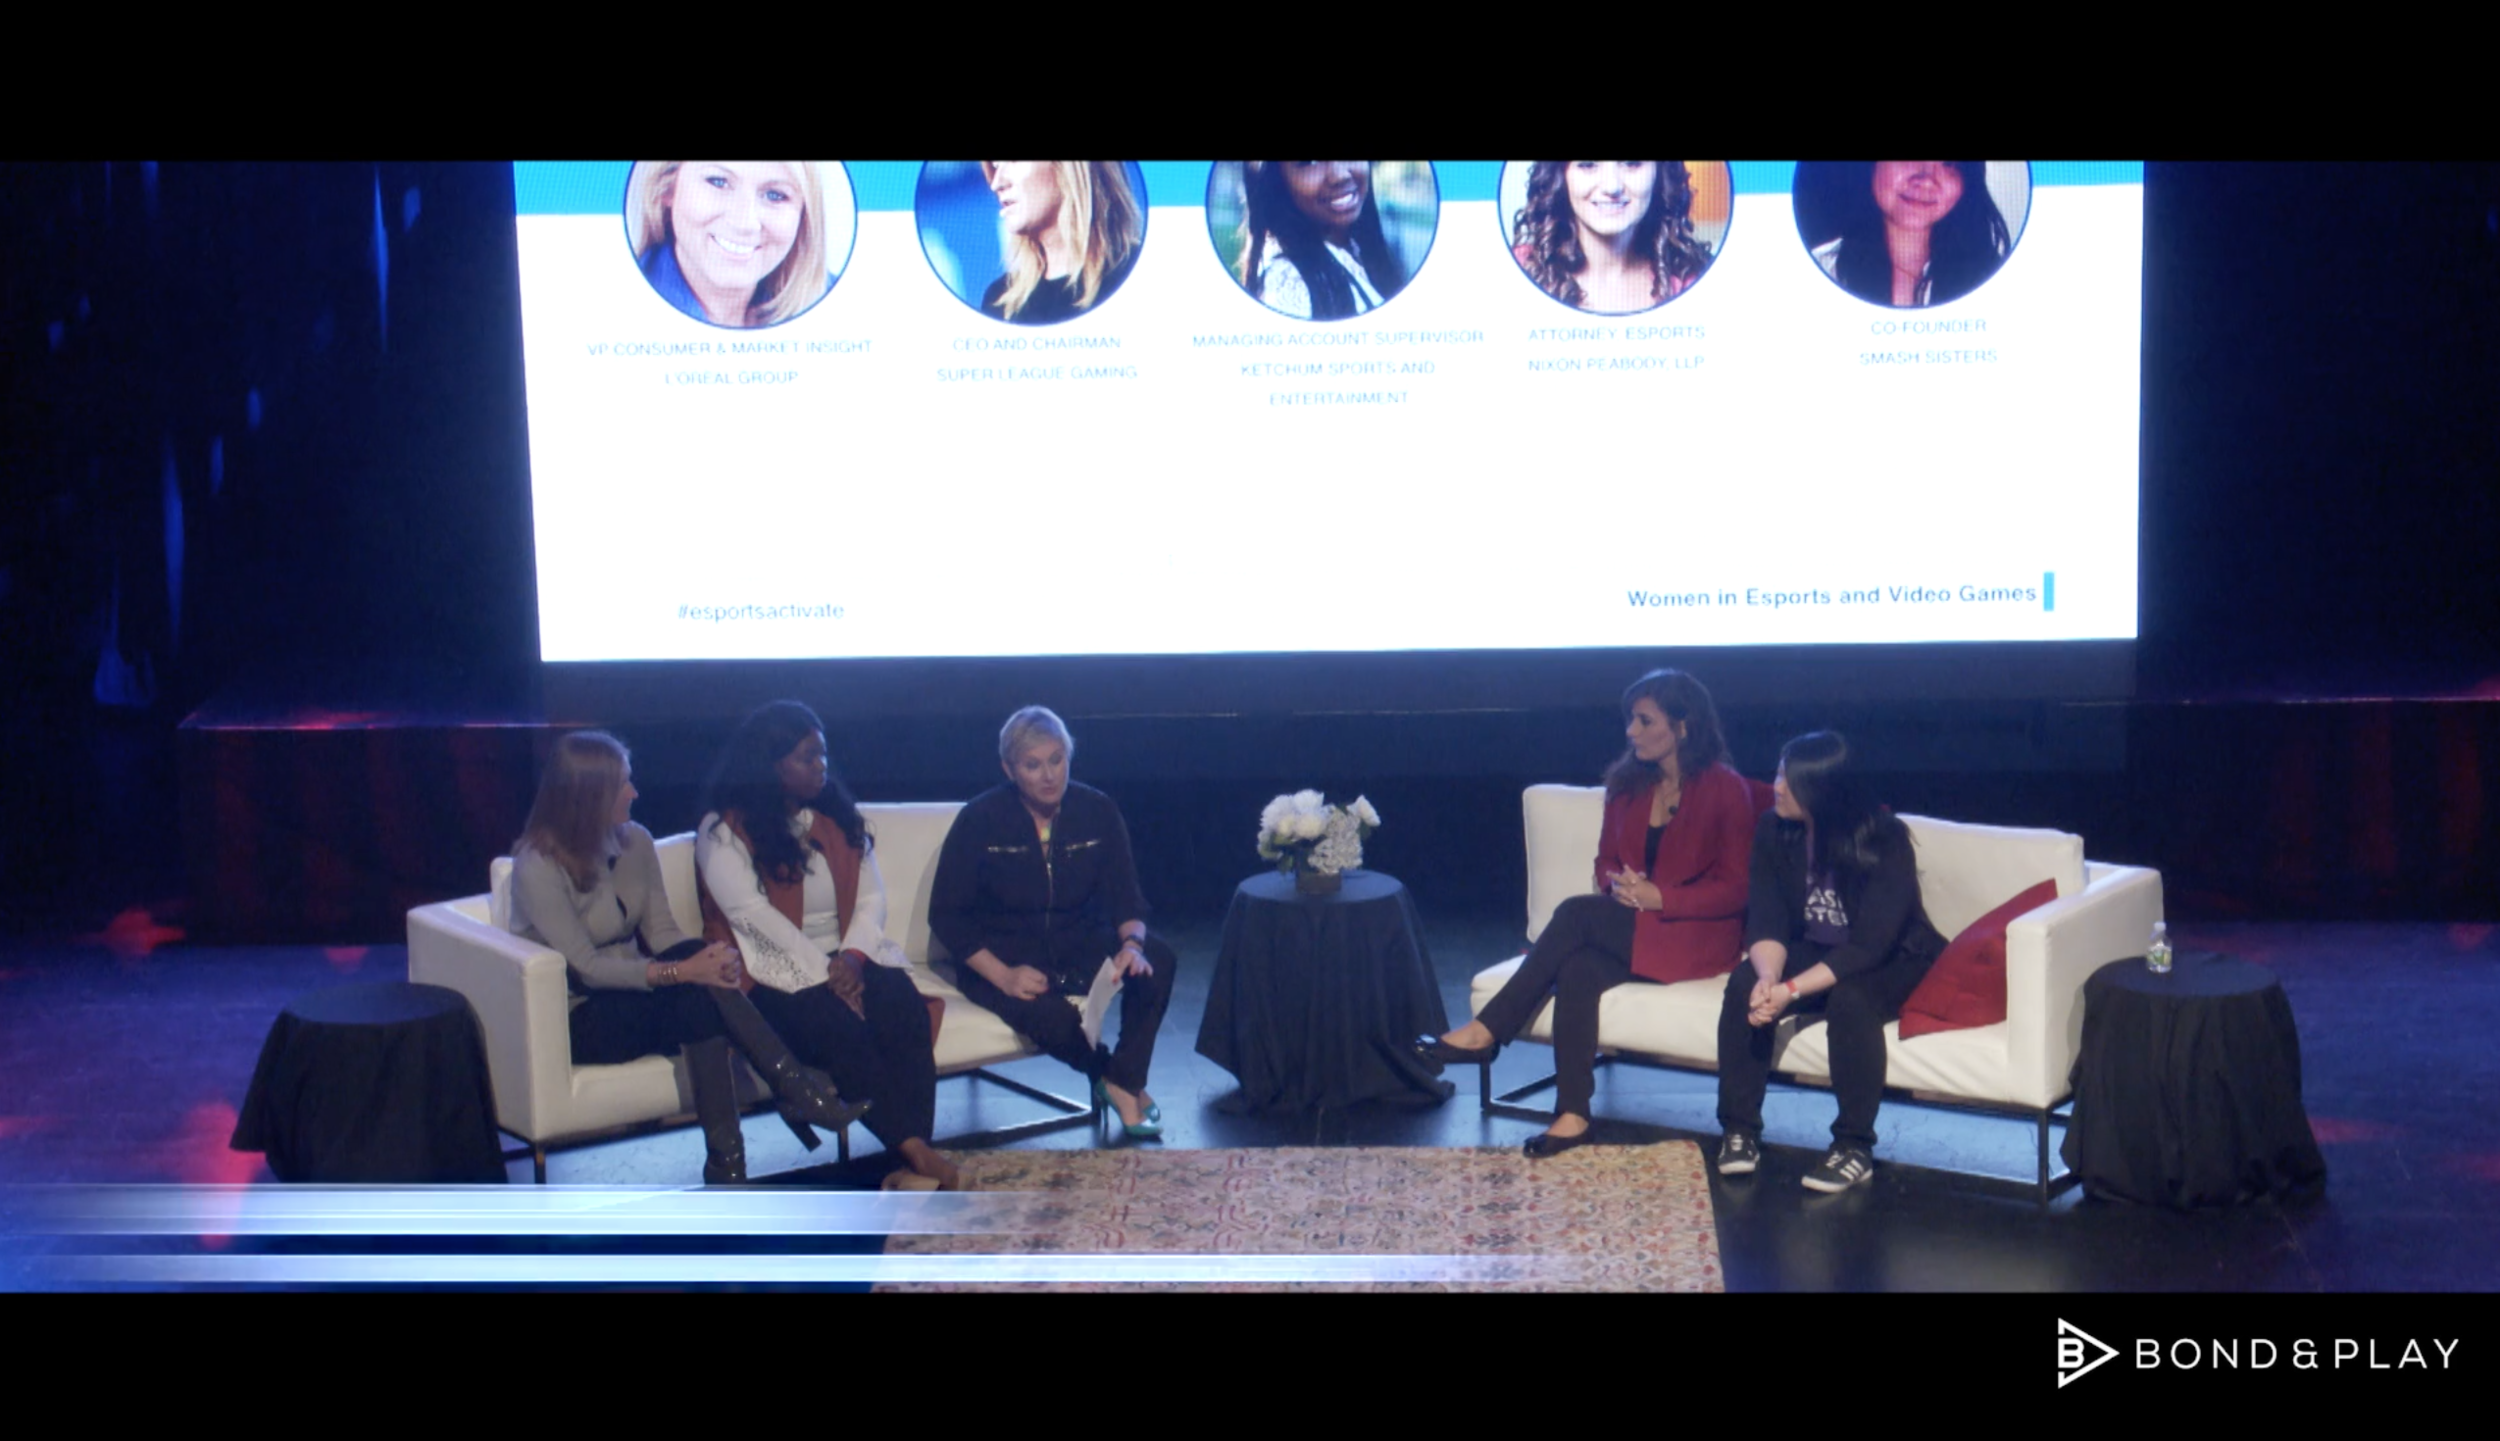 WOMEN IN ESPORTS PANEL - Esports Activate Conference in Times Square, New York City in March 2018. Exploring the rising demographic and how to market to them effectively. Click to view recap.